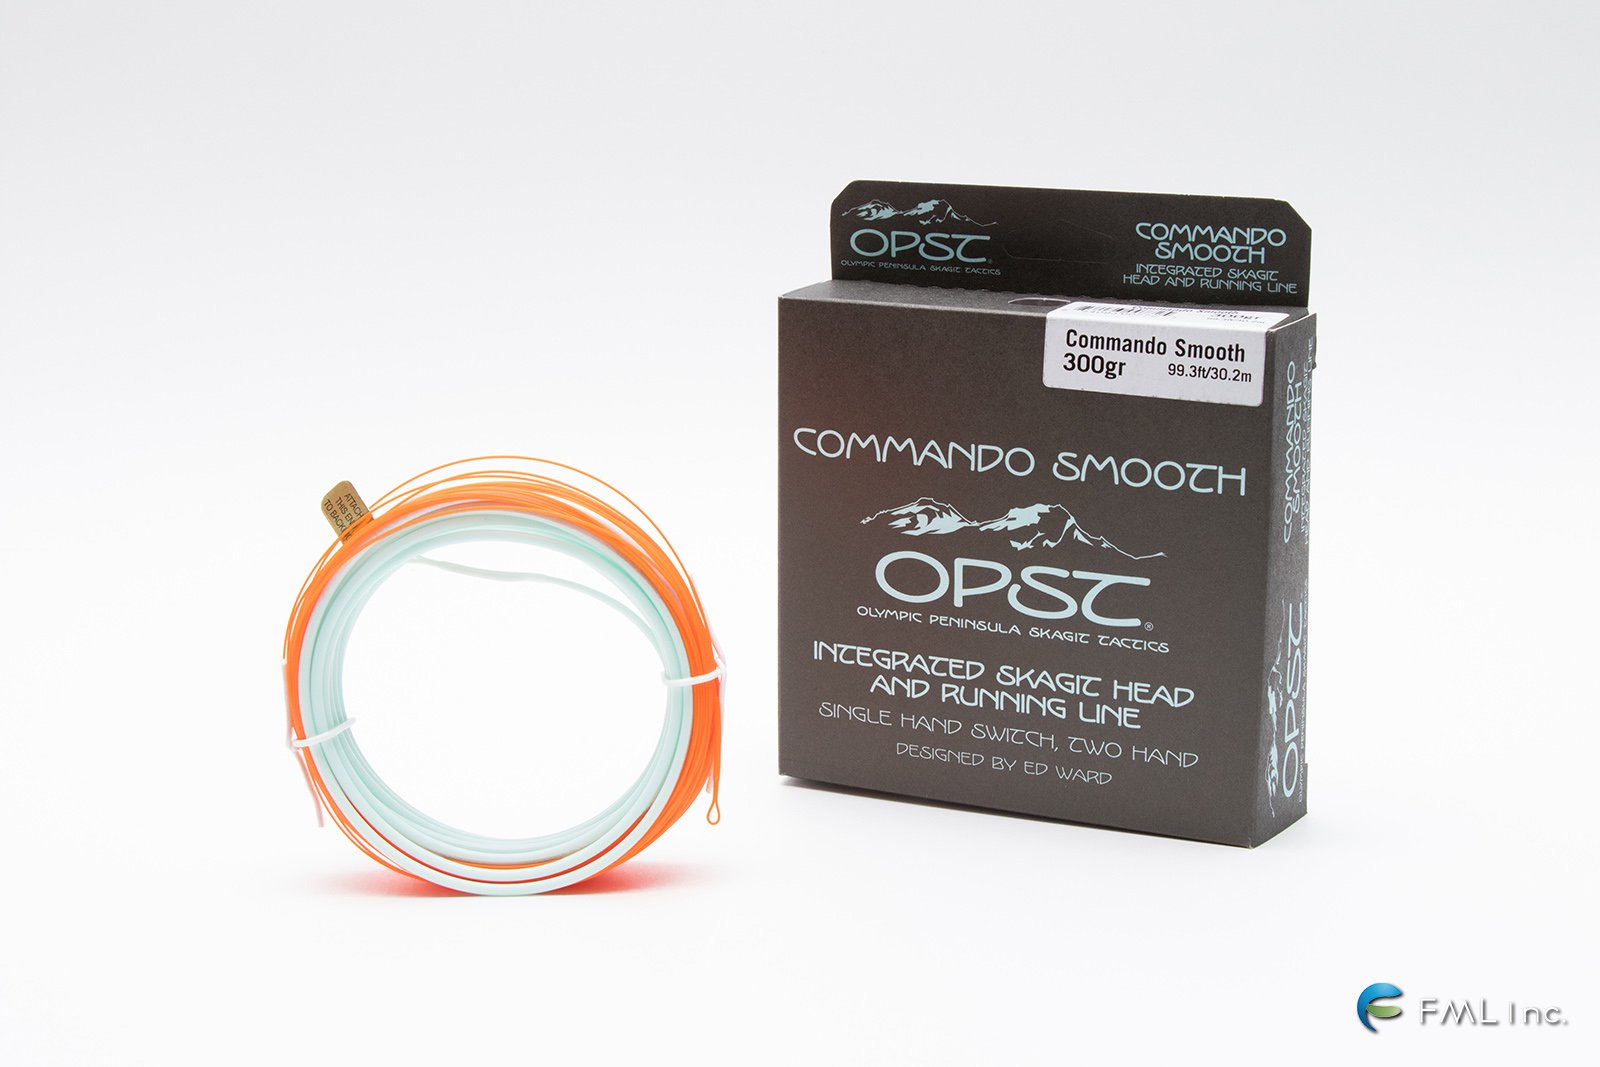 OPST Pure Skagit Command Smooth Integrated Single Switch Double Hand Spey Lines